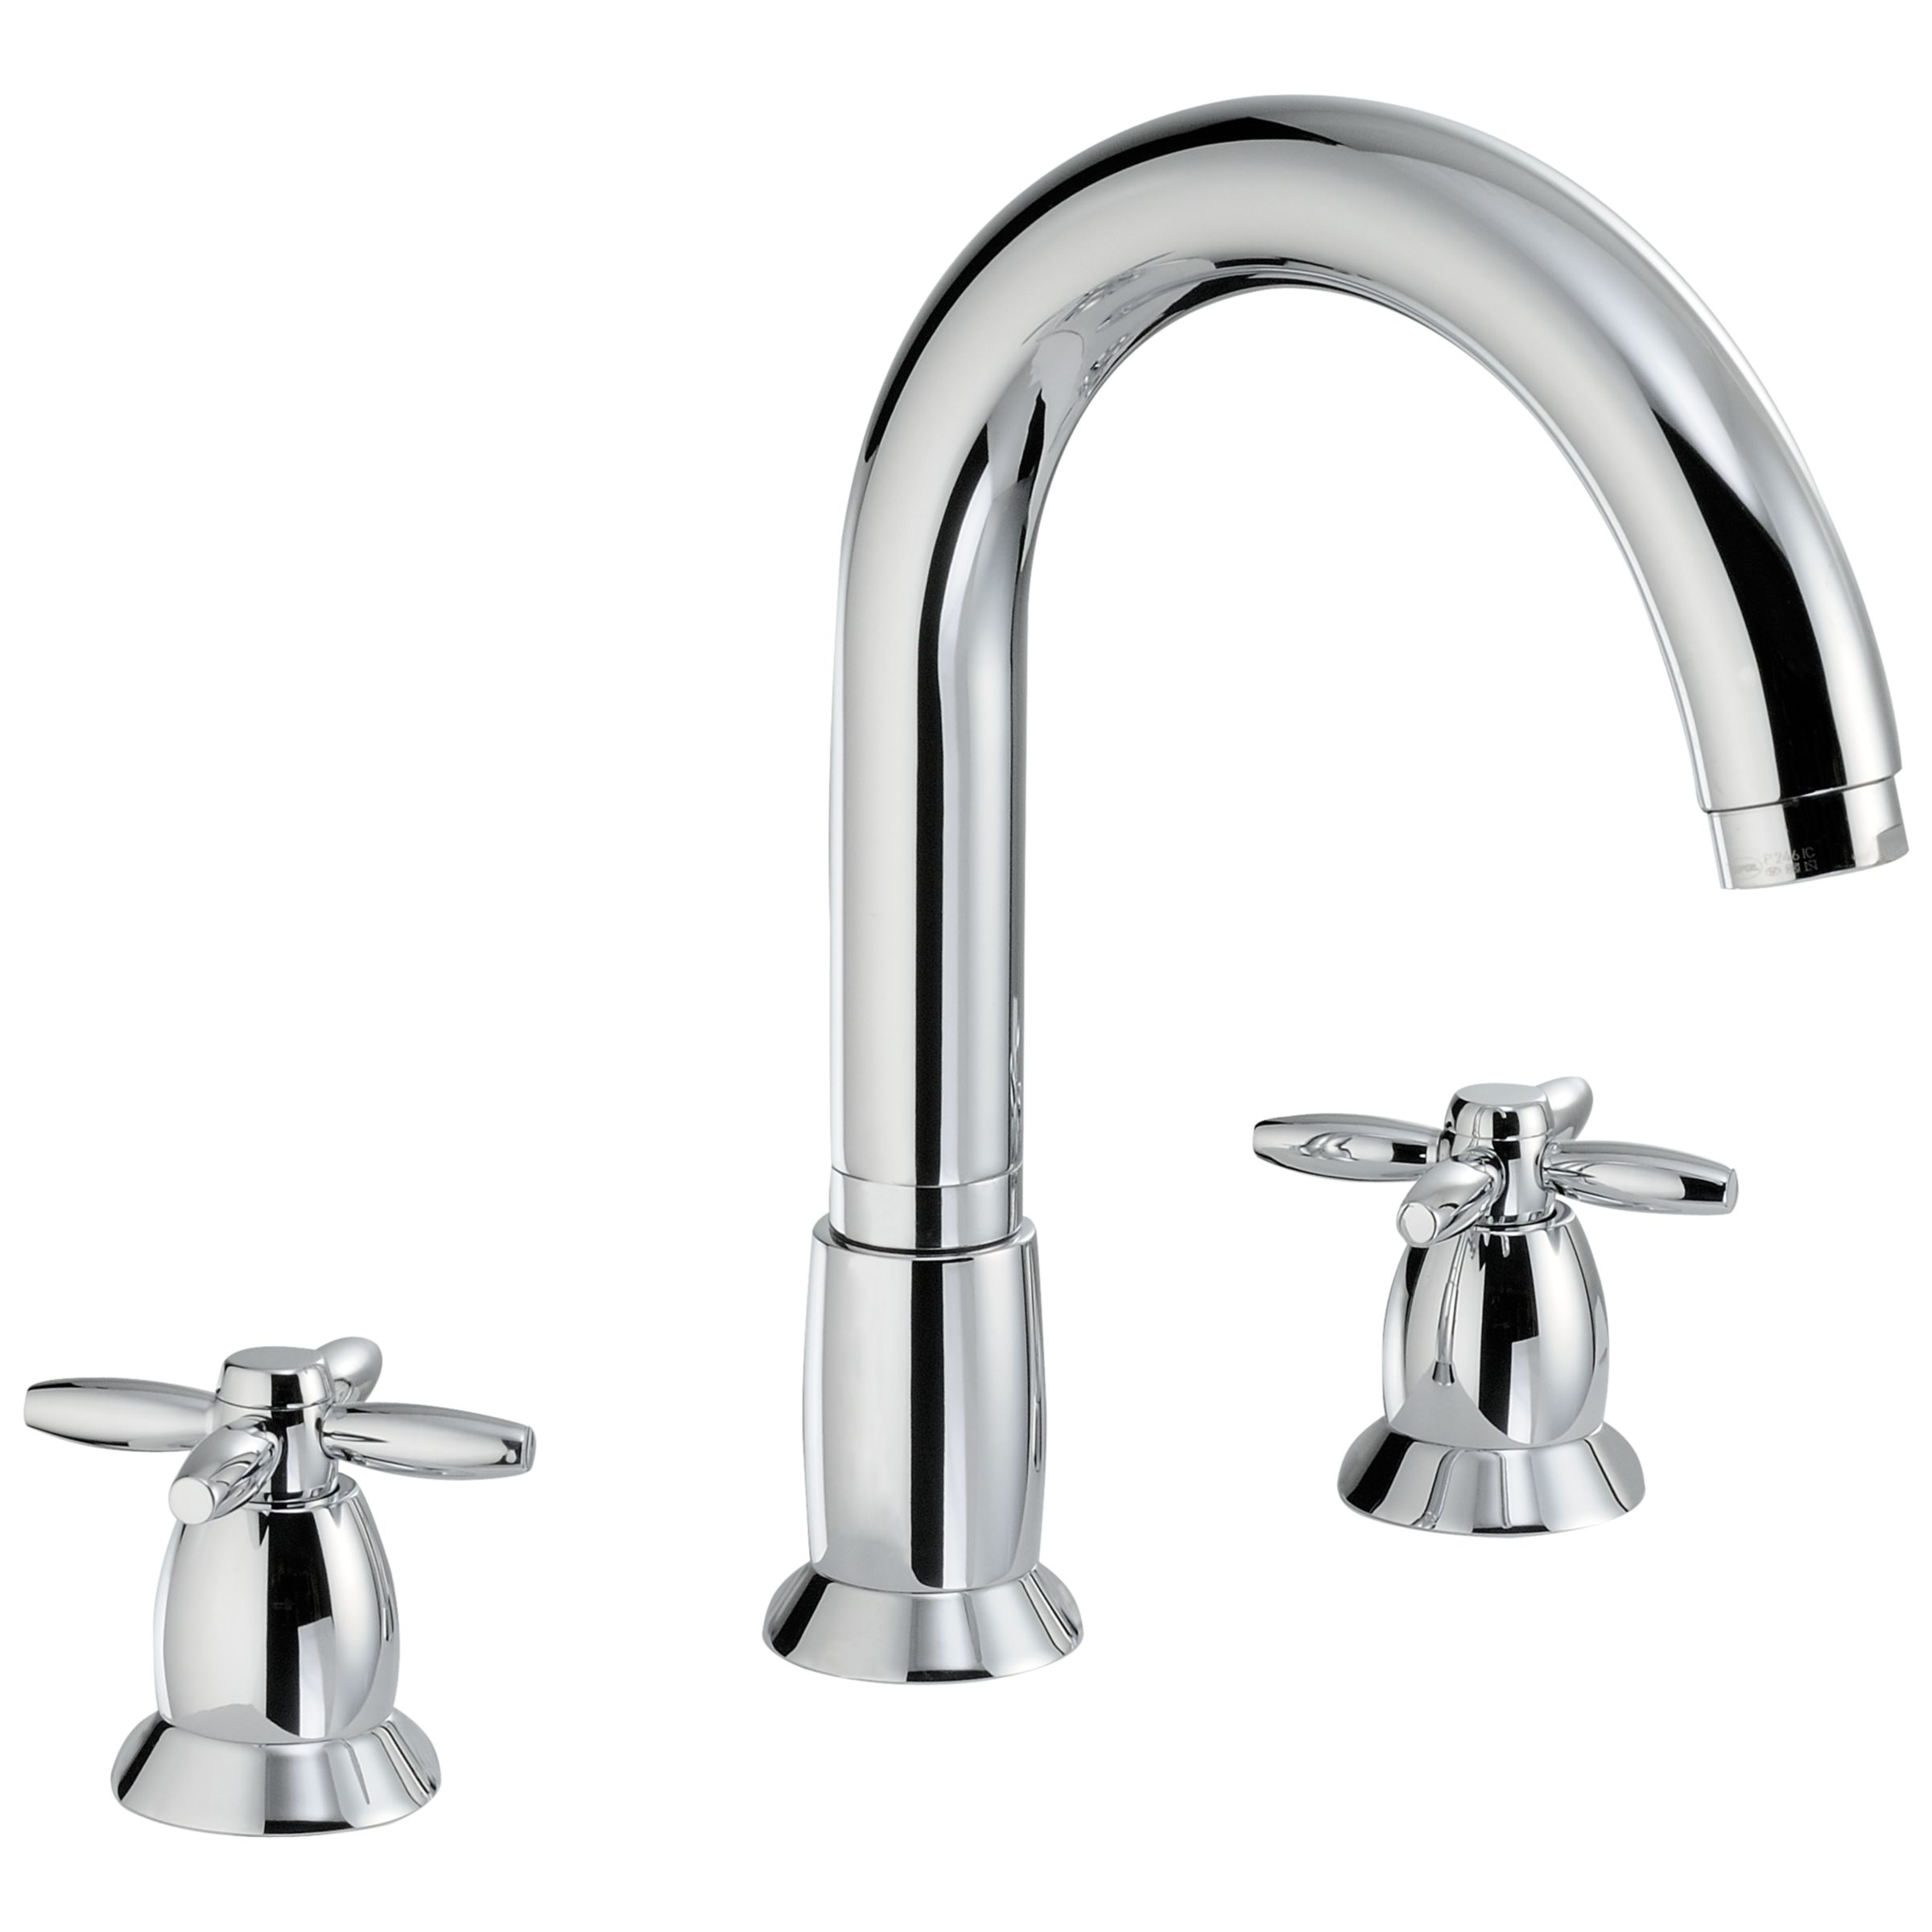 Abode Abode Opulence Thermostatic Deck Mounted 3 Hole Bath Mixer Tap